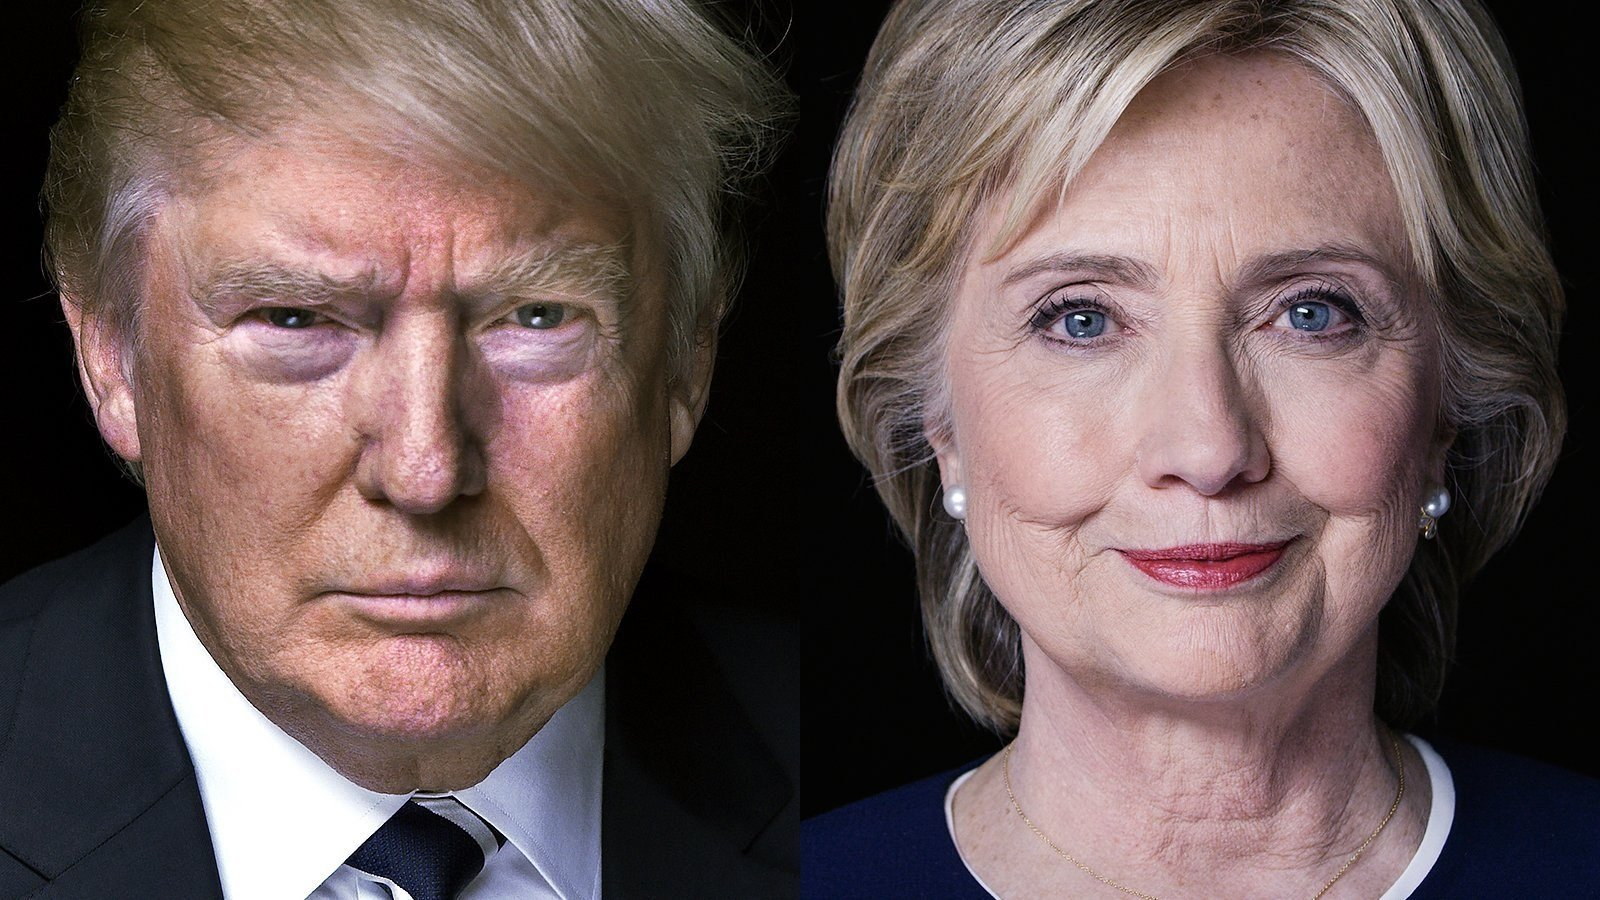 Trump edges ahead of Clinton in race for White House — Presidential vote